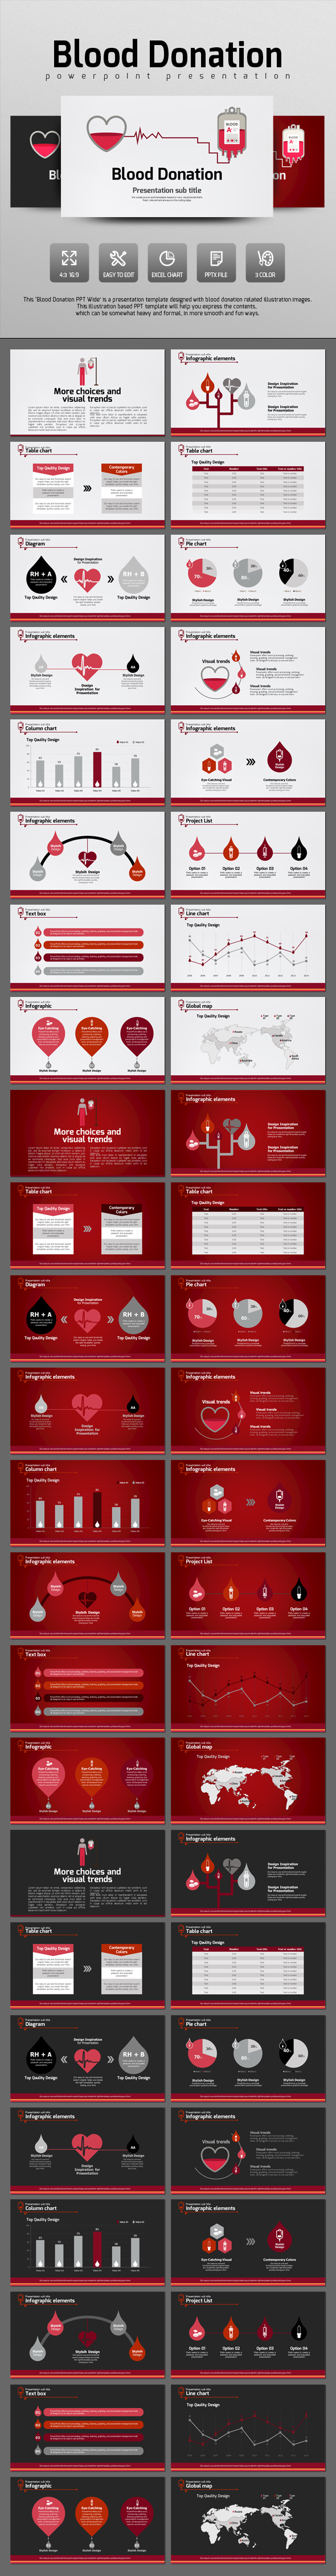 Blood Donation - PowerPoint Templates Presentation Templates